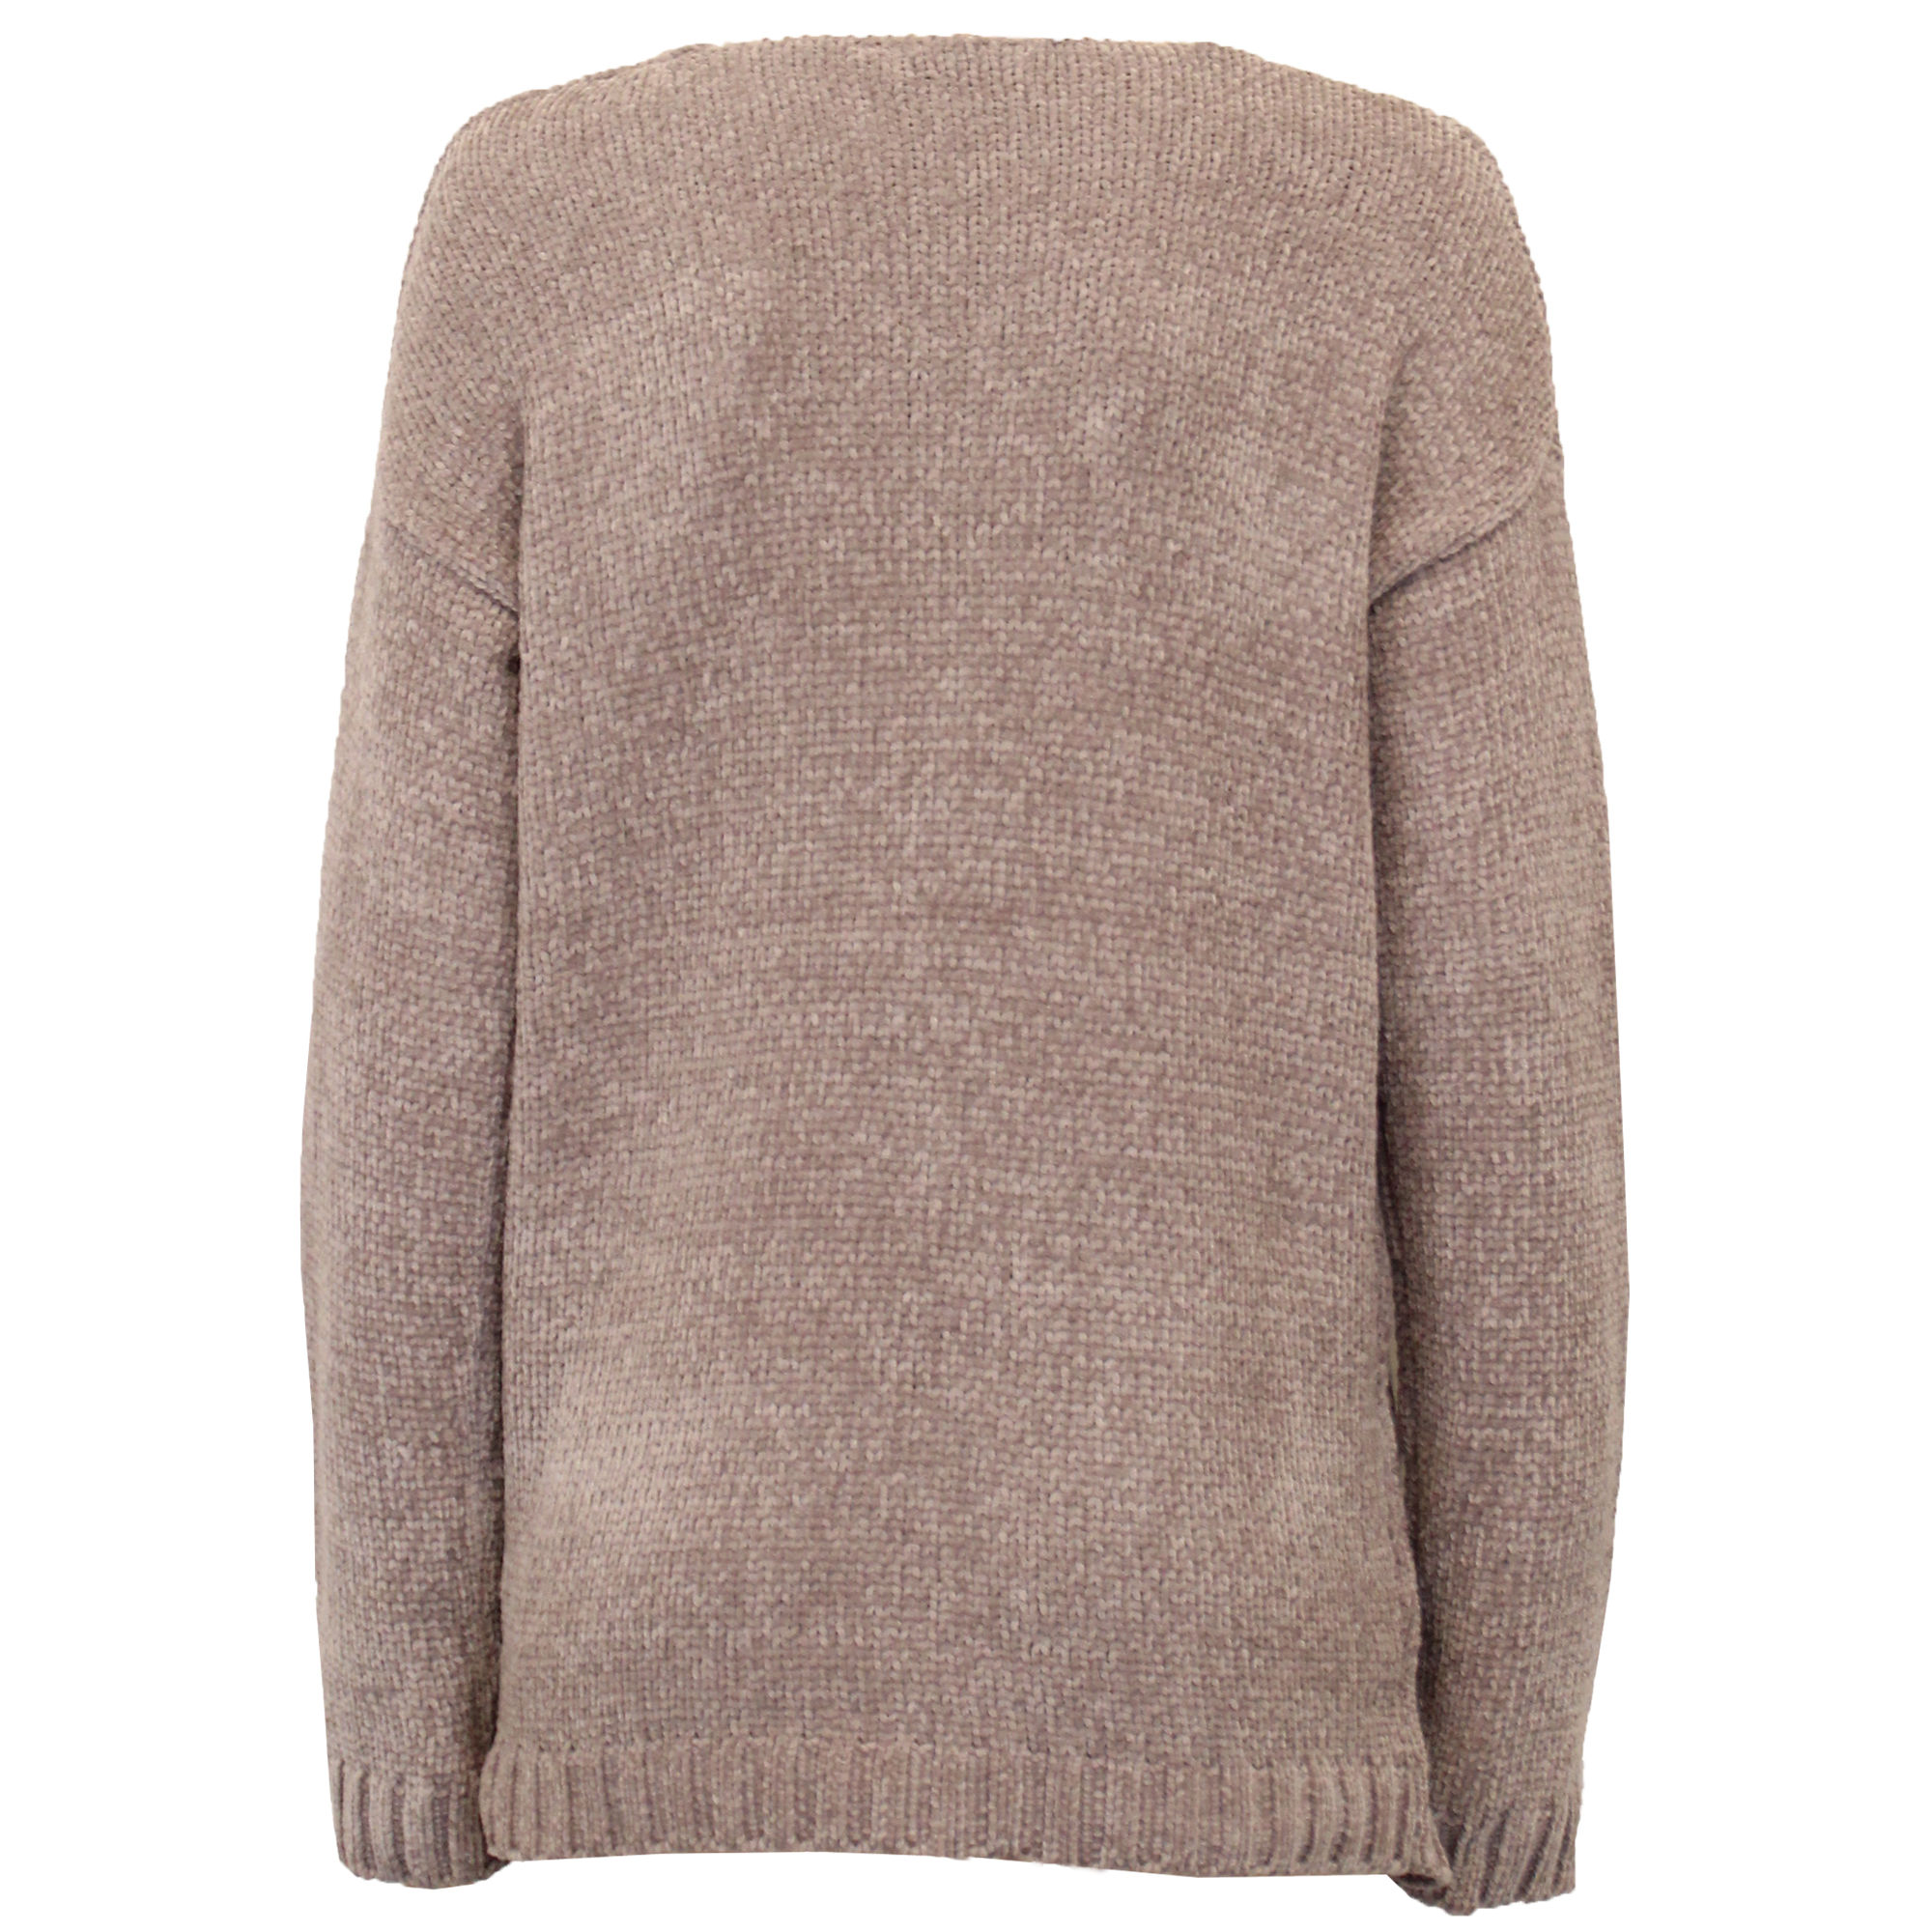 Ladies Chenille Jumper Brave Soul Womens Knitted TOTTY Deep V Neck Pullover New